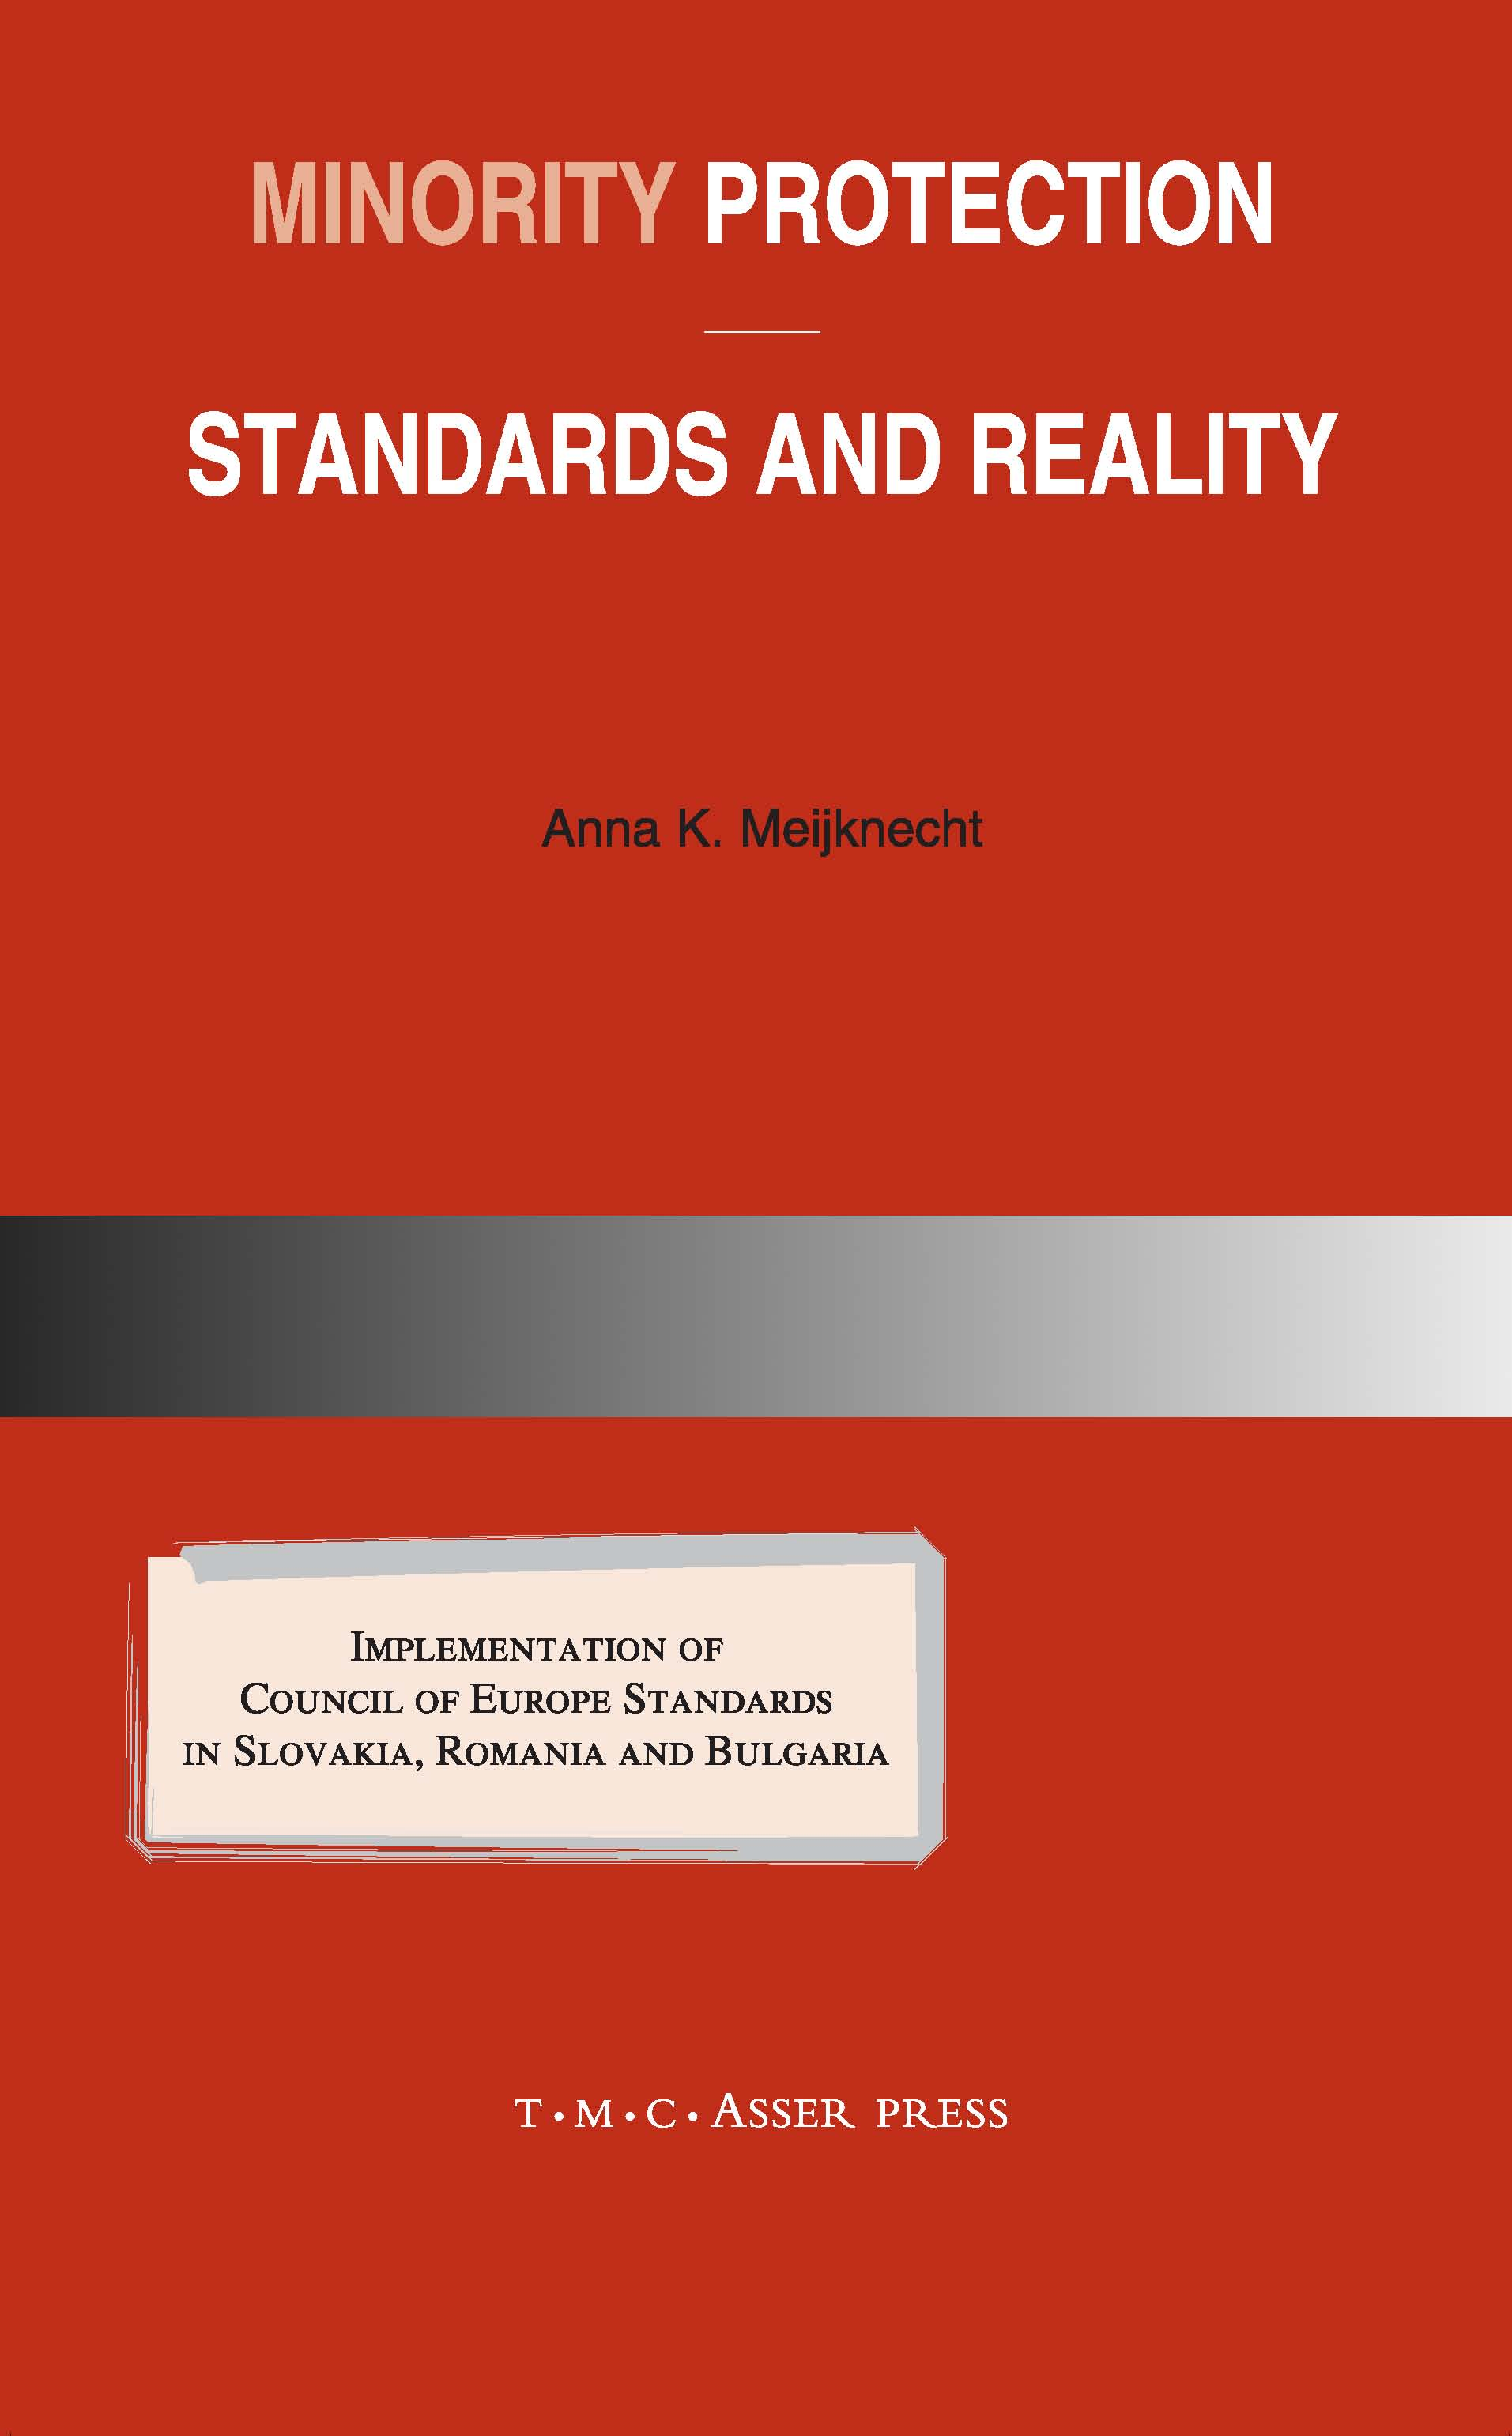 Minority Protection: Standards and Reality - Implementation of Council of Europe standards in Slovakia, Romania and Bulgaria